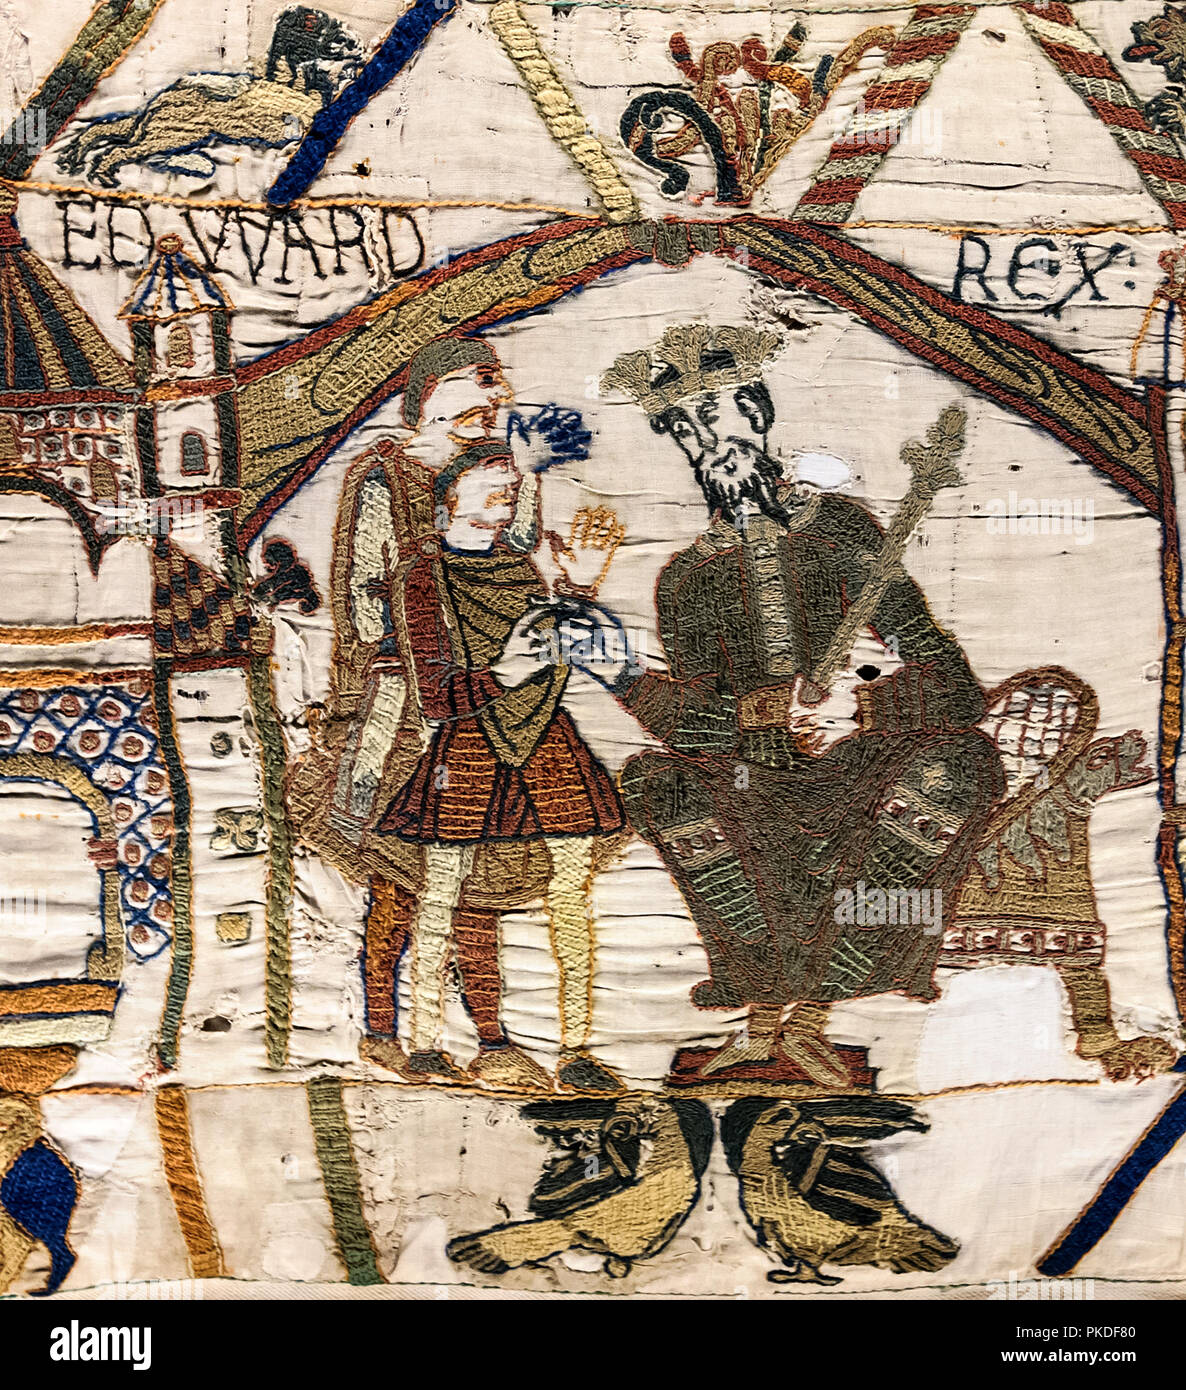 Bayeux Tapestry, King Edward the Confessor and Harold Godwinson at Winchester - Stock Image